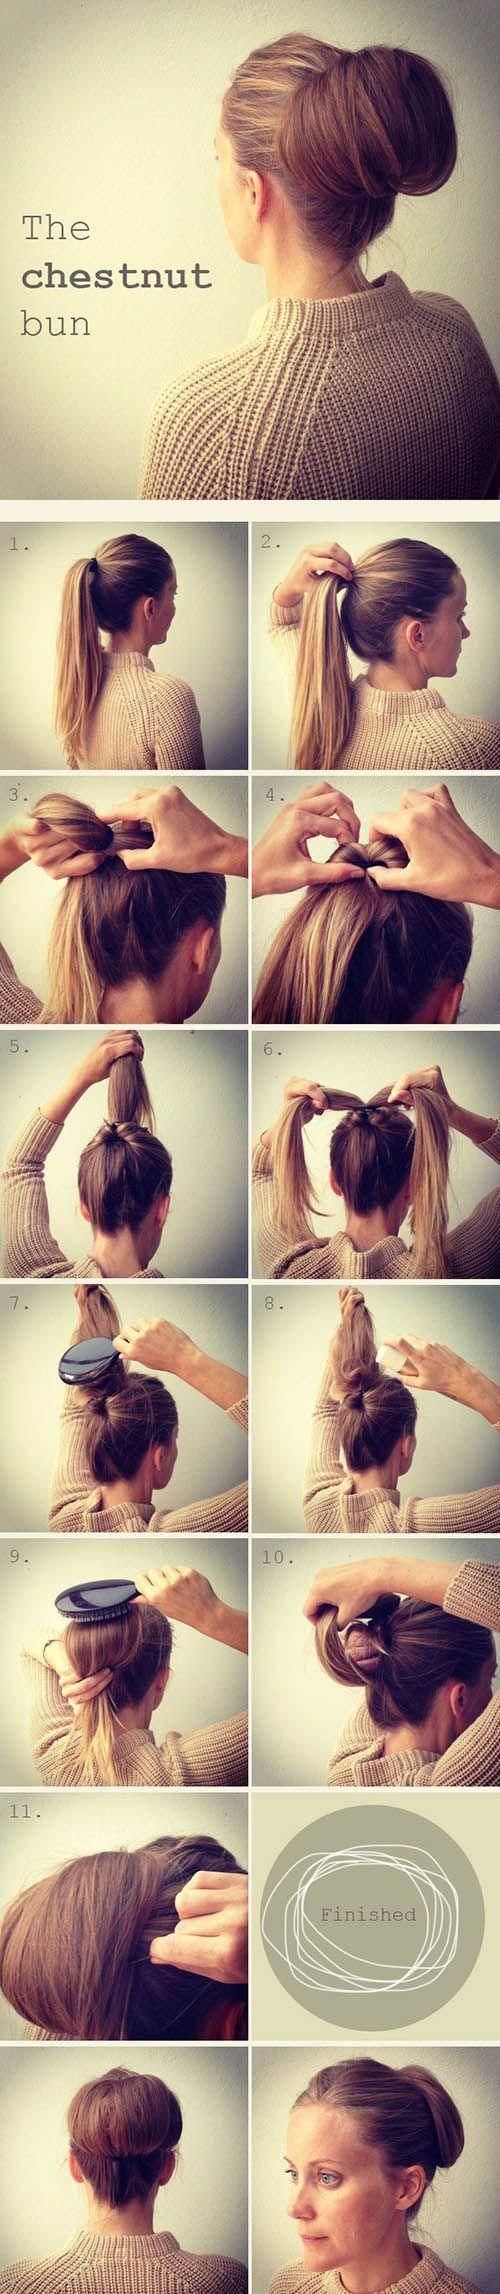 The Chestnut Bun.